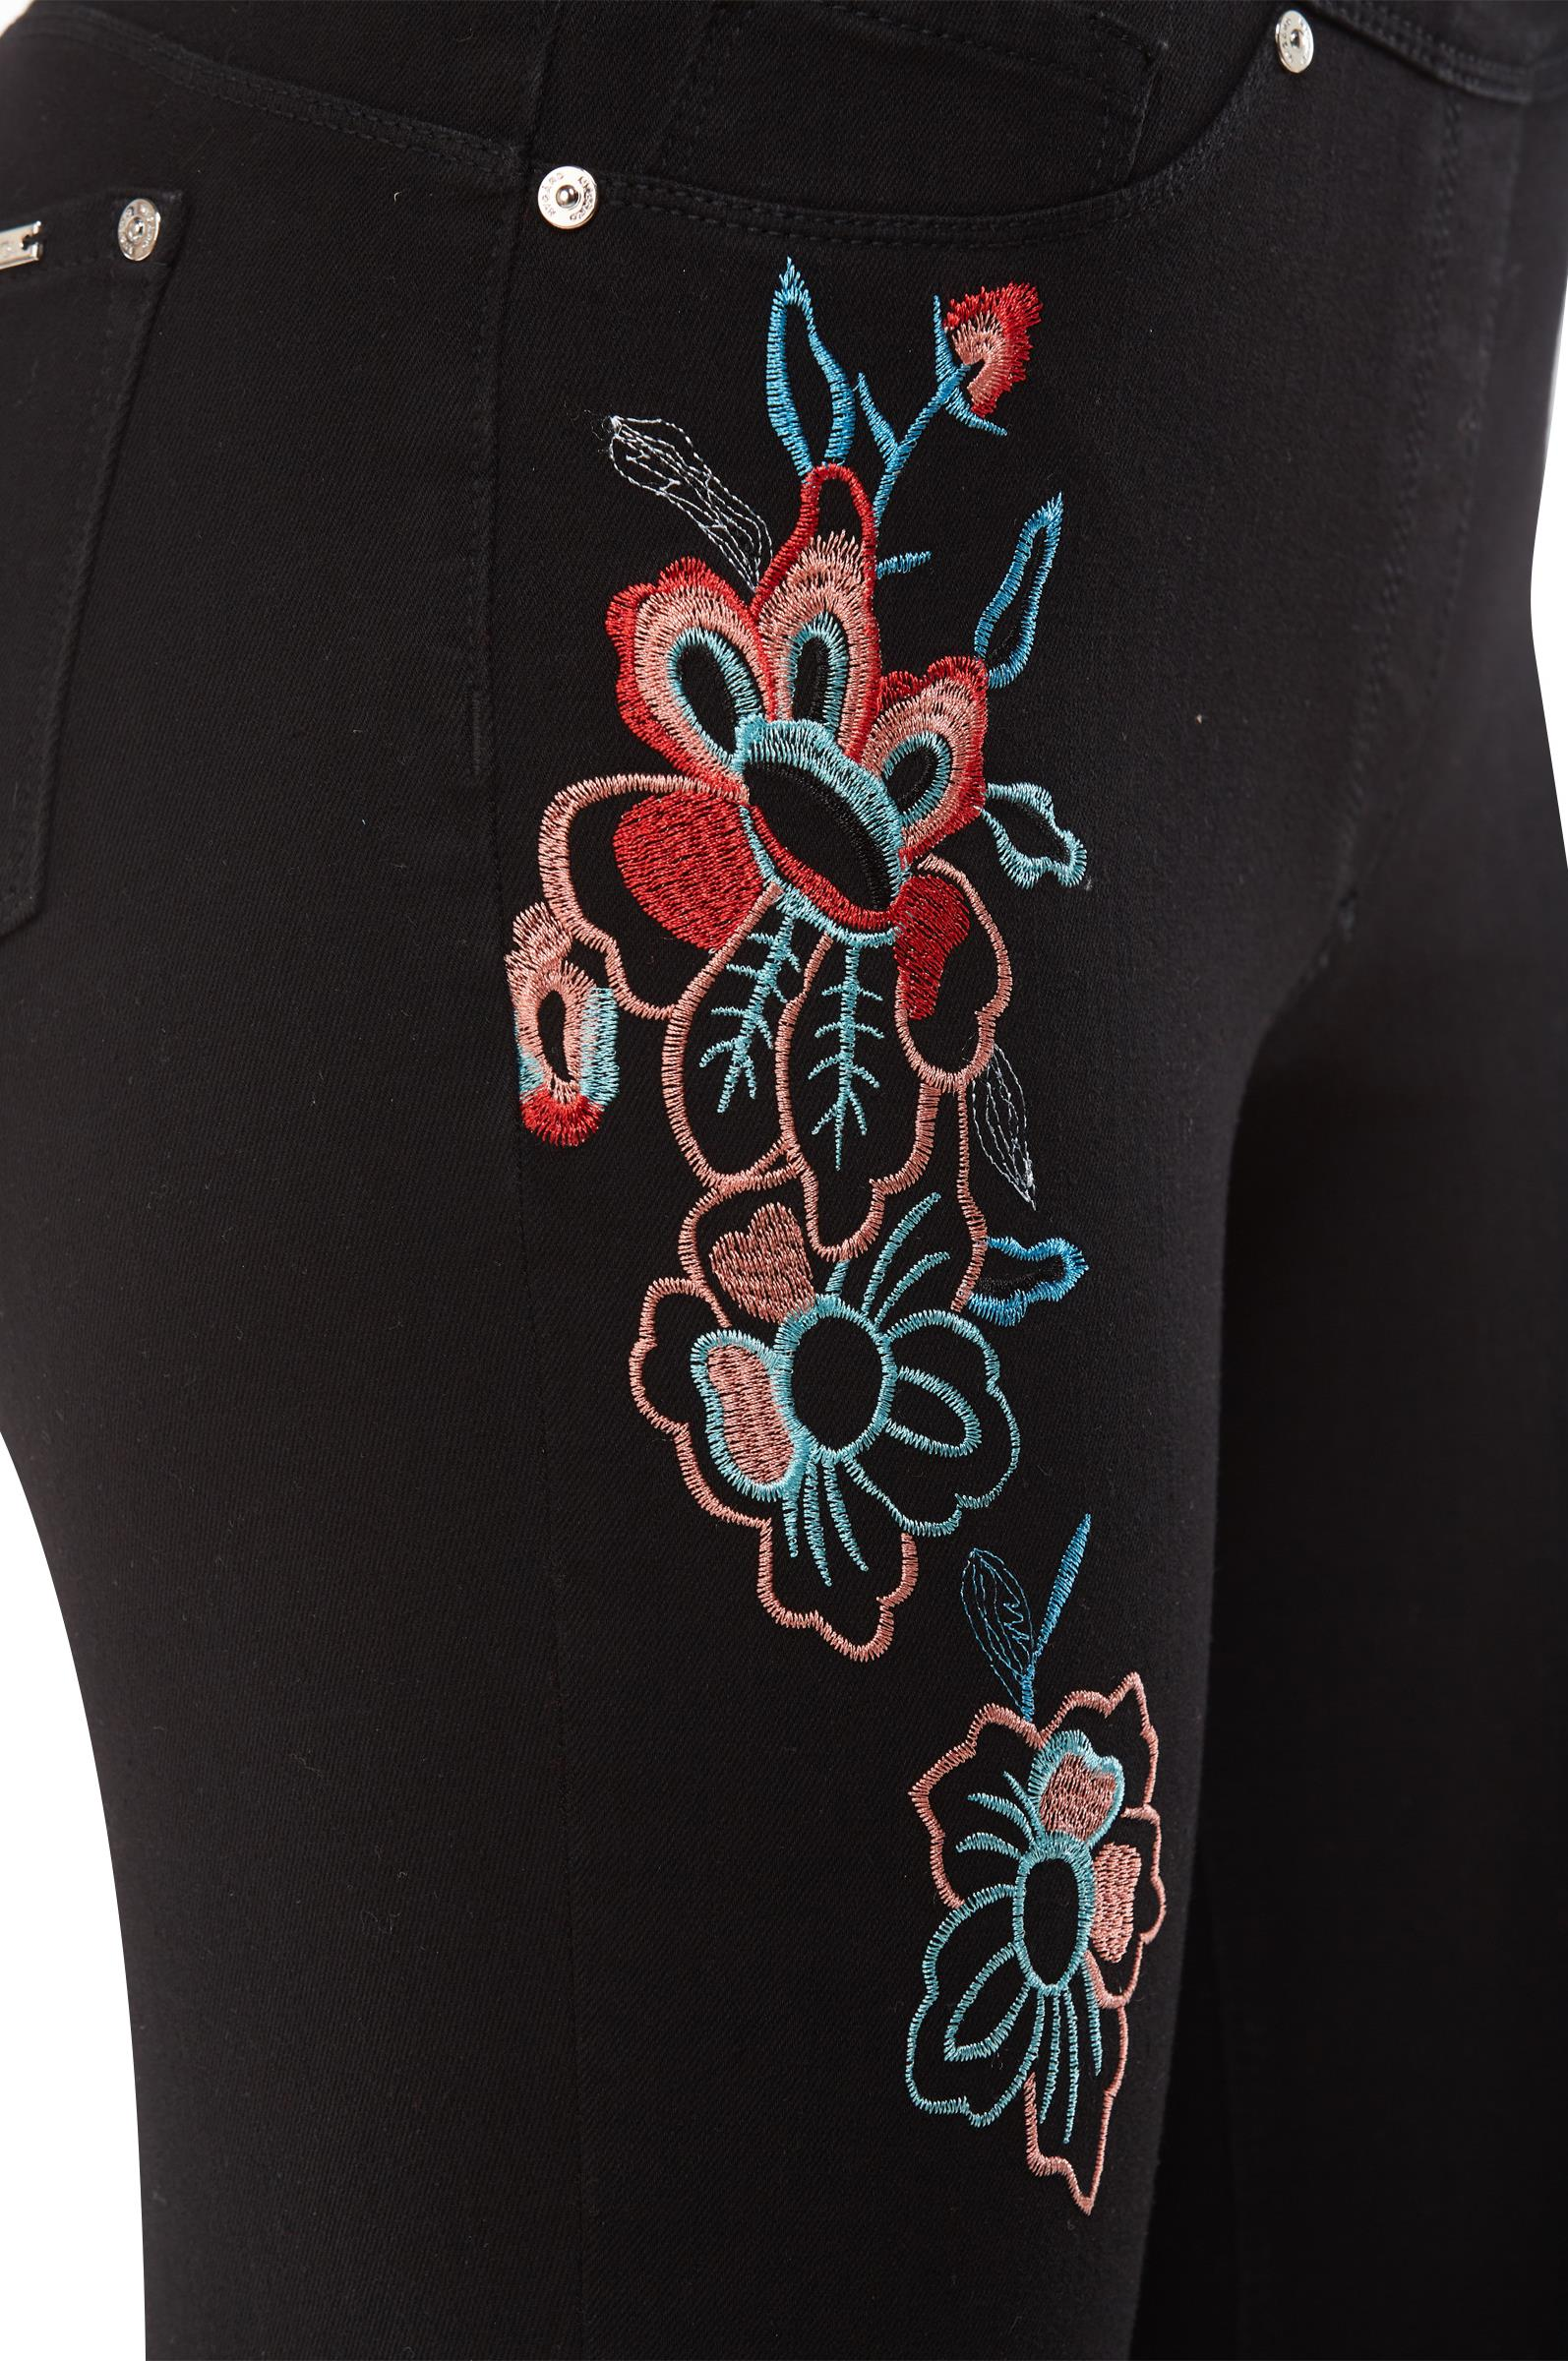 Black compression cropped pants floral embroidery detail